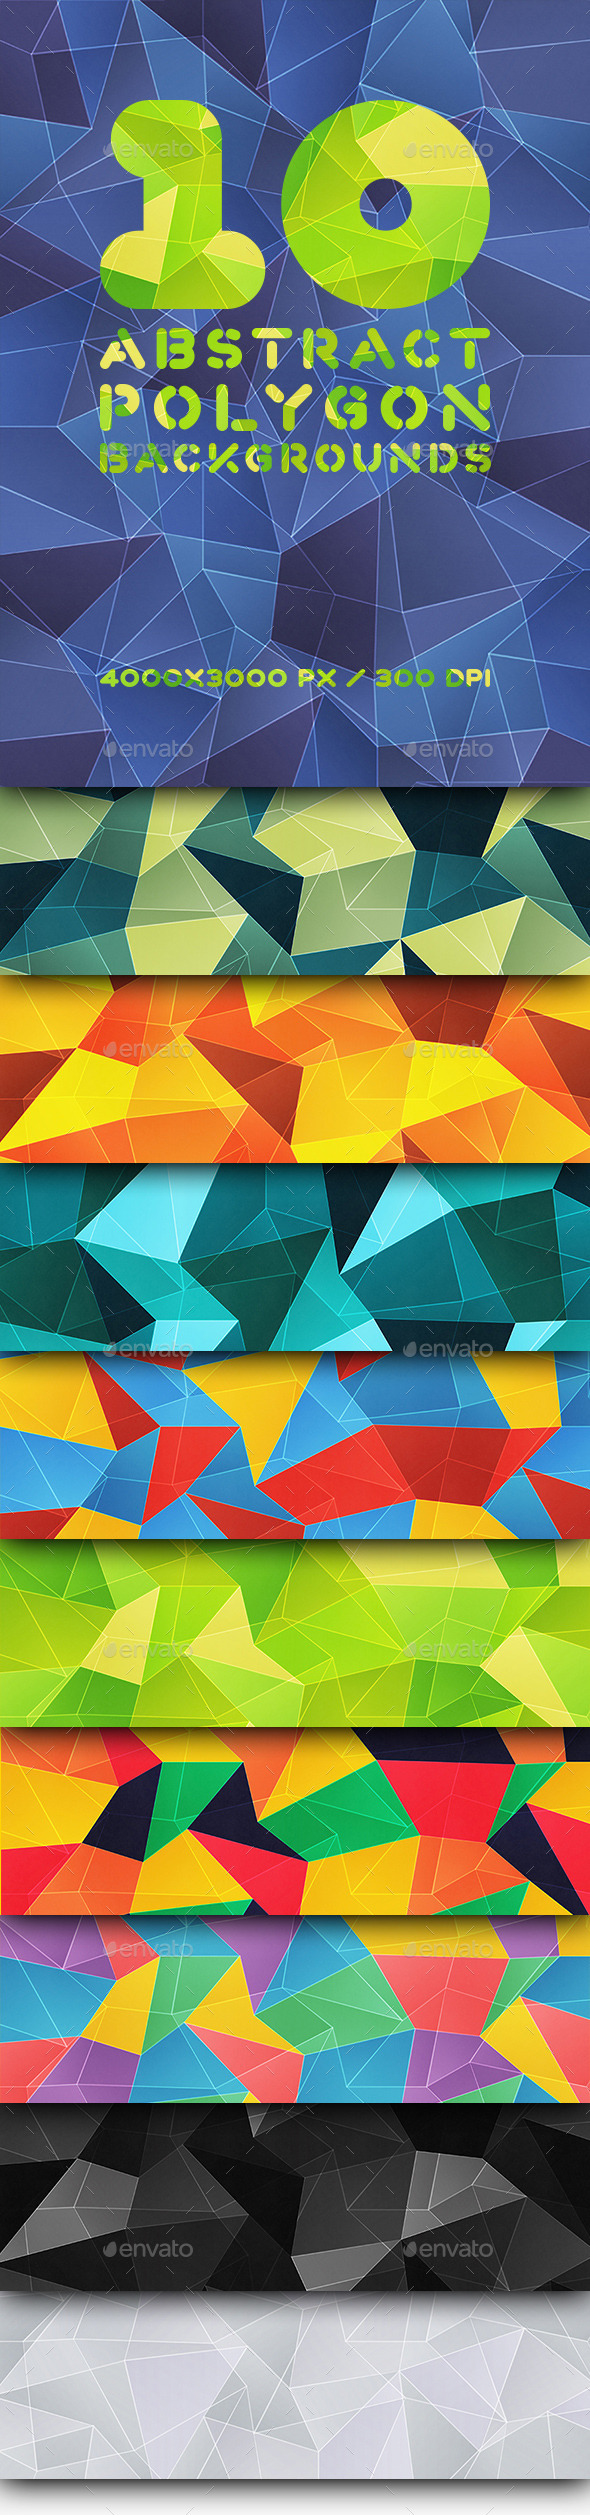 GraphicRiver 10 Abstract Polygonal Backgrounds 9701922